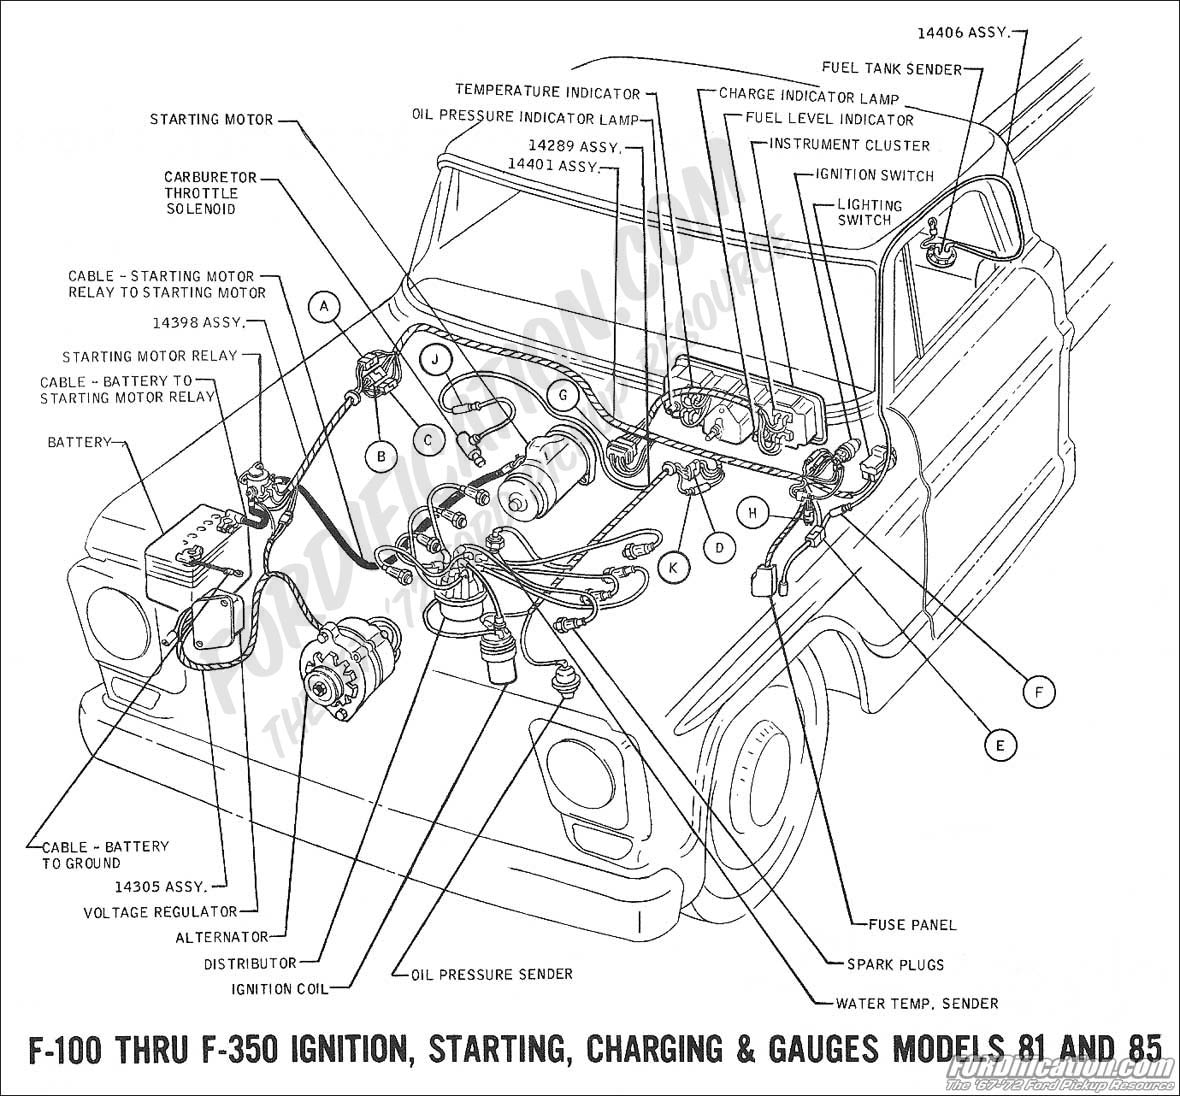 1985 Ford F 250 Starting Wiring Diagram Library Ranger Electrical 1973 F100 Charging